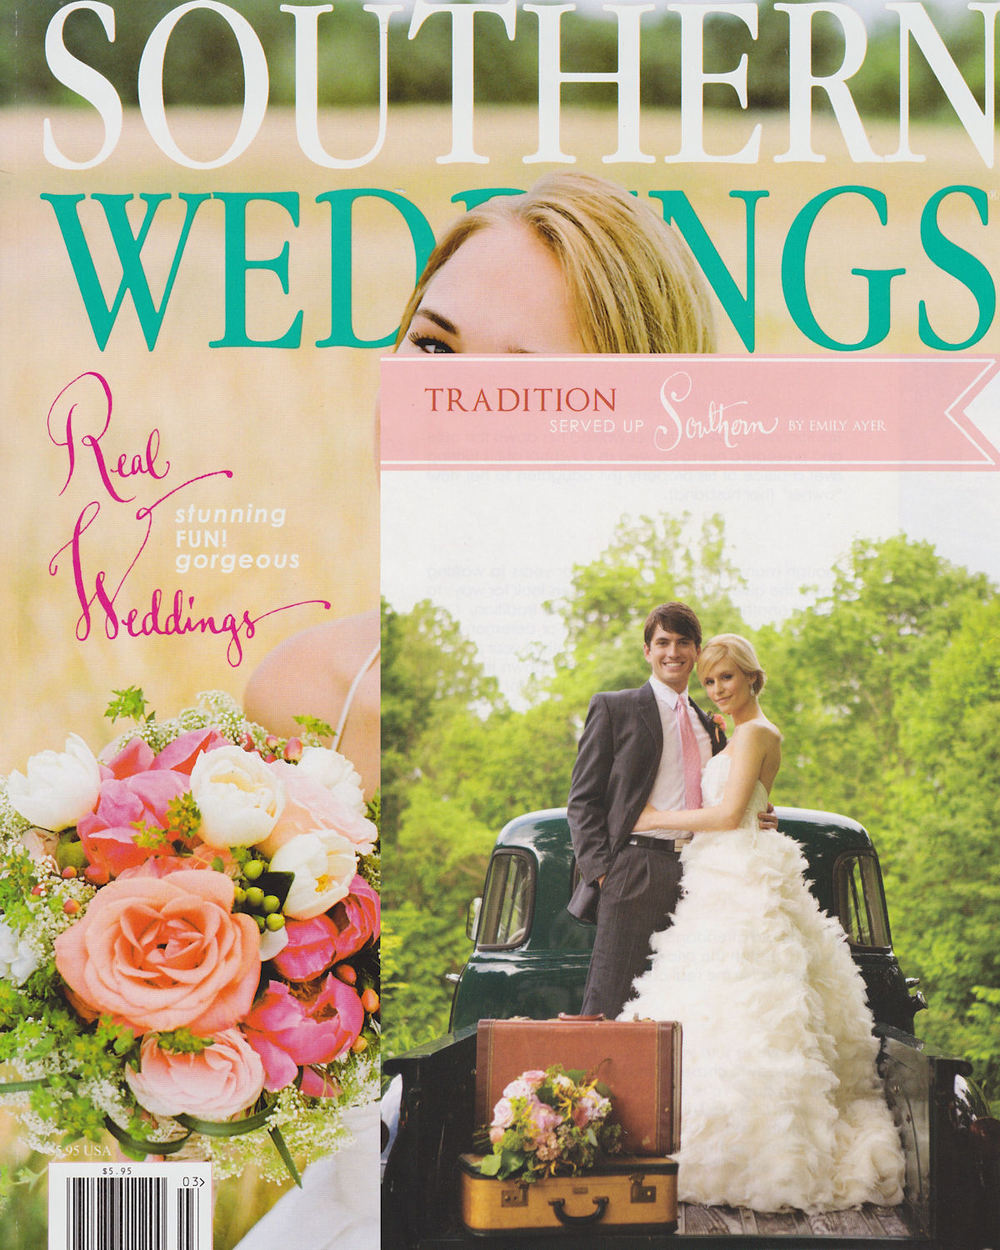 swedding-med.jpg